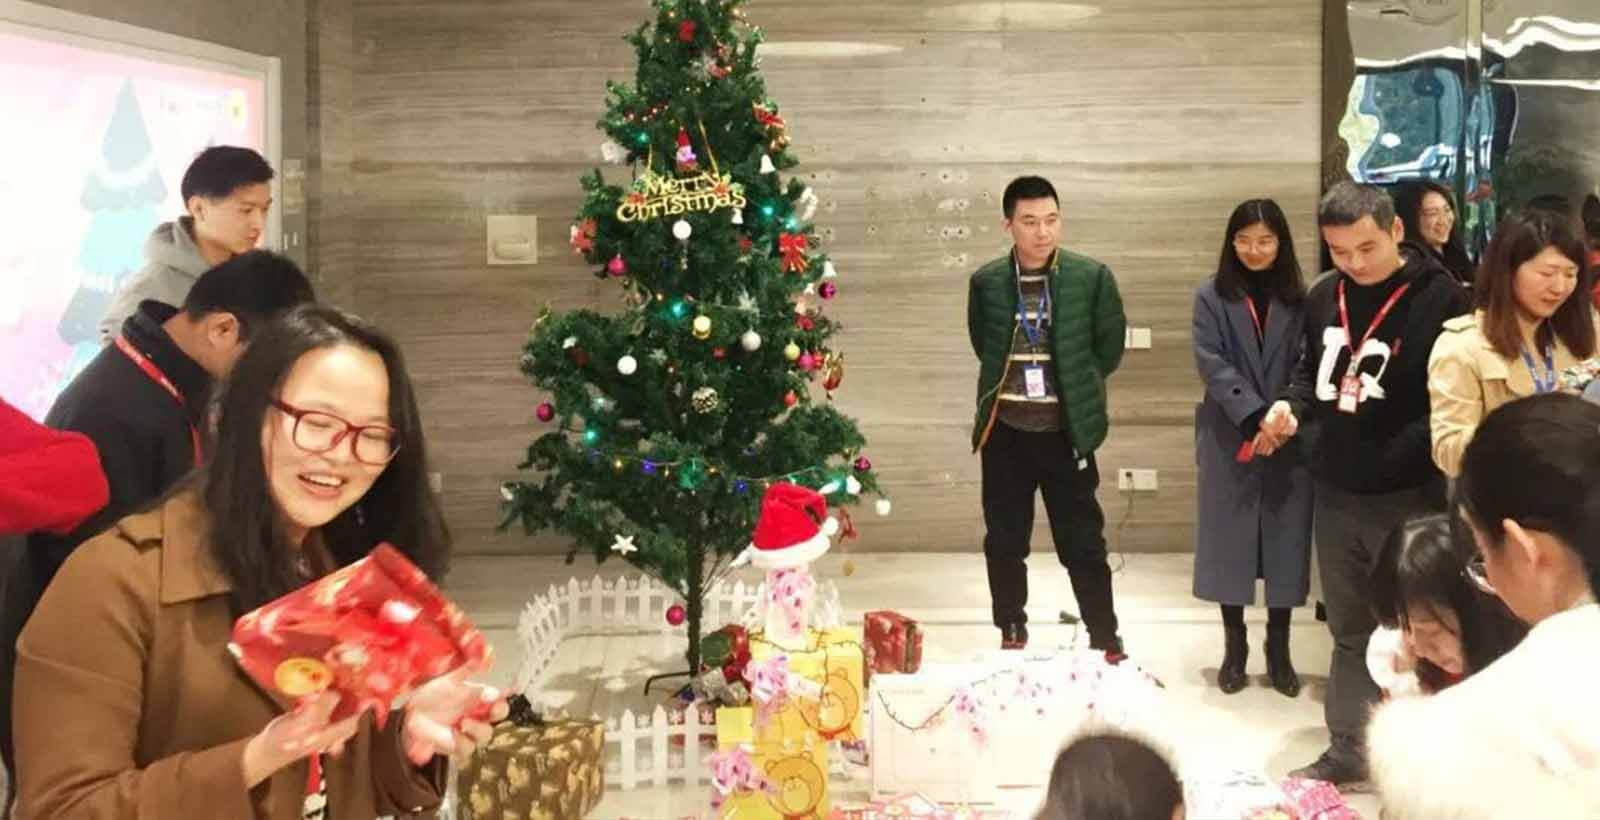 Exchanging gifts party of IQ members at Christmas of 2018